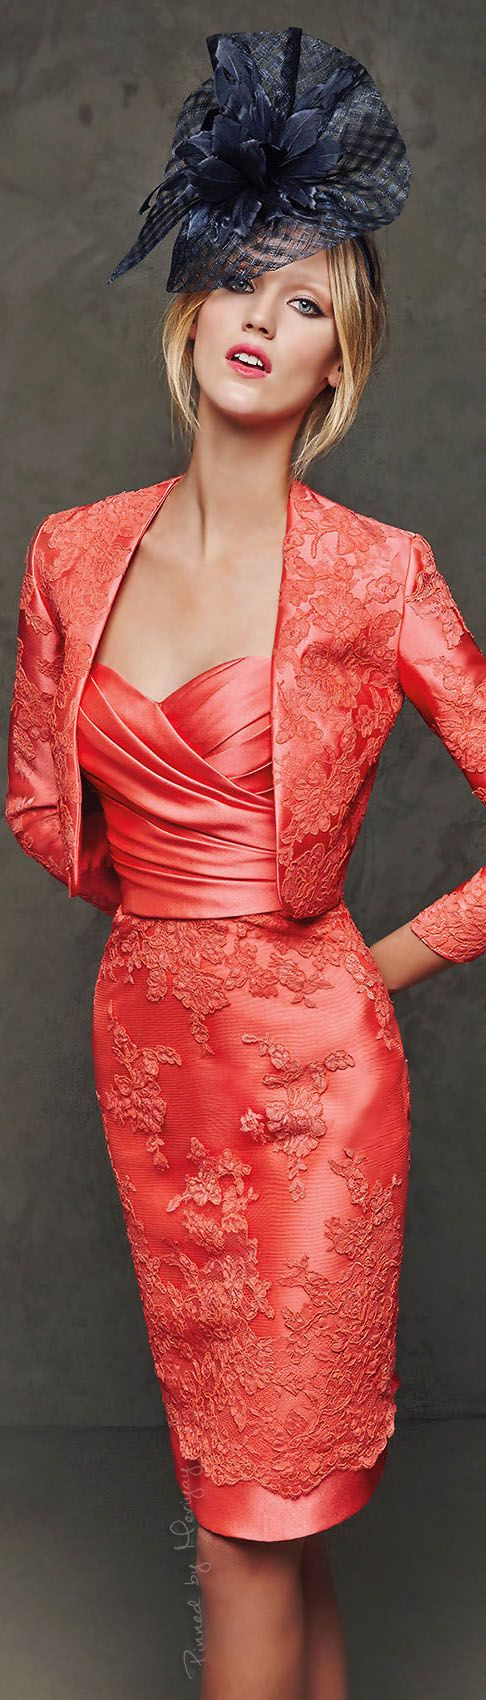 Pronovias 2016 coral suit  women fashion outfit clothing style apparel @roressclothes closet ideas